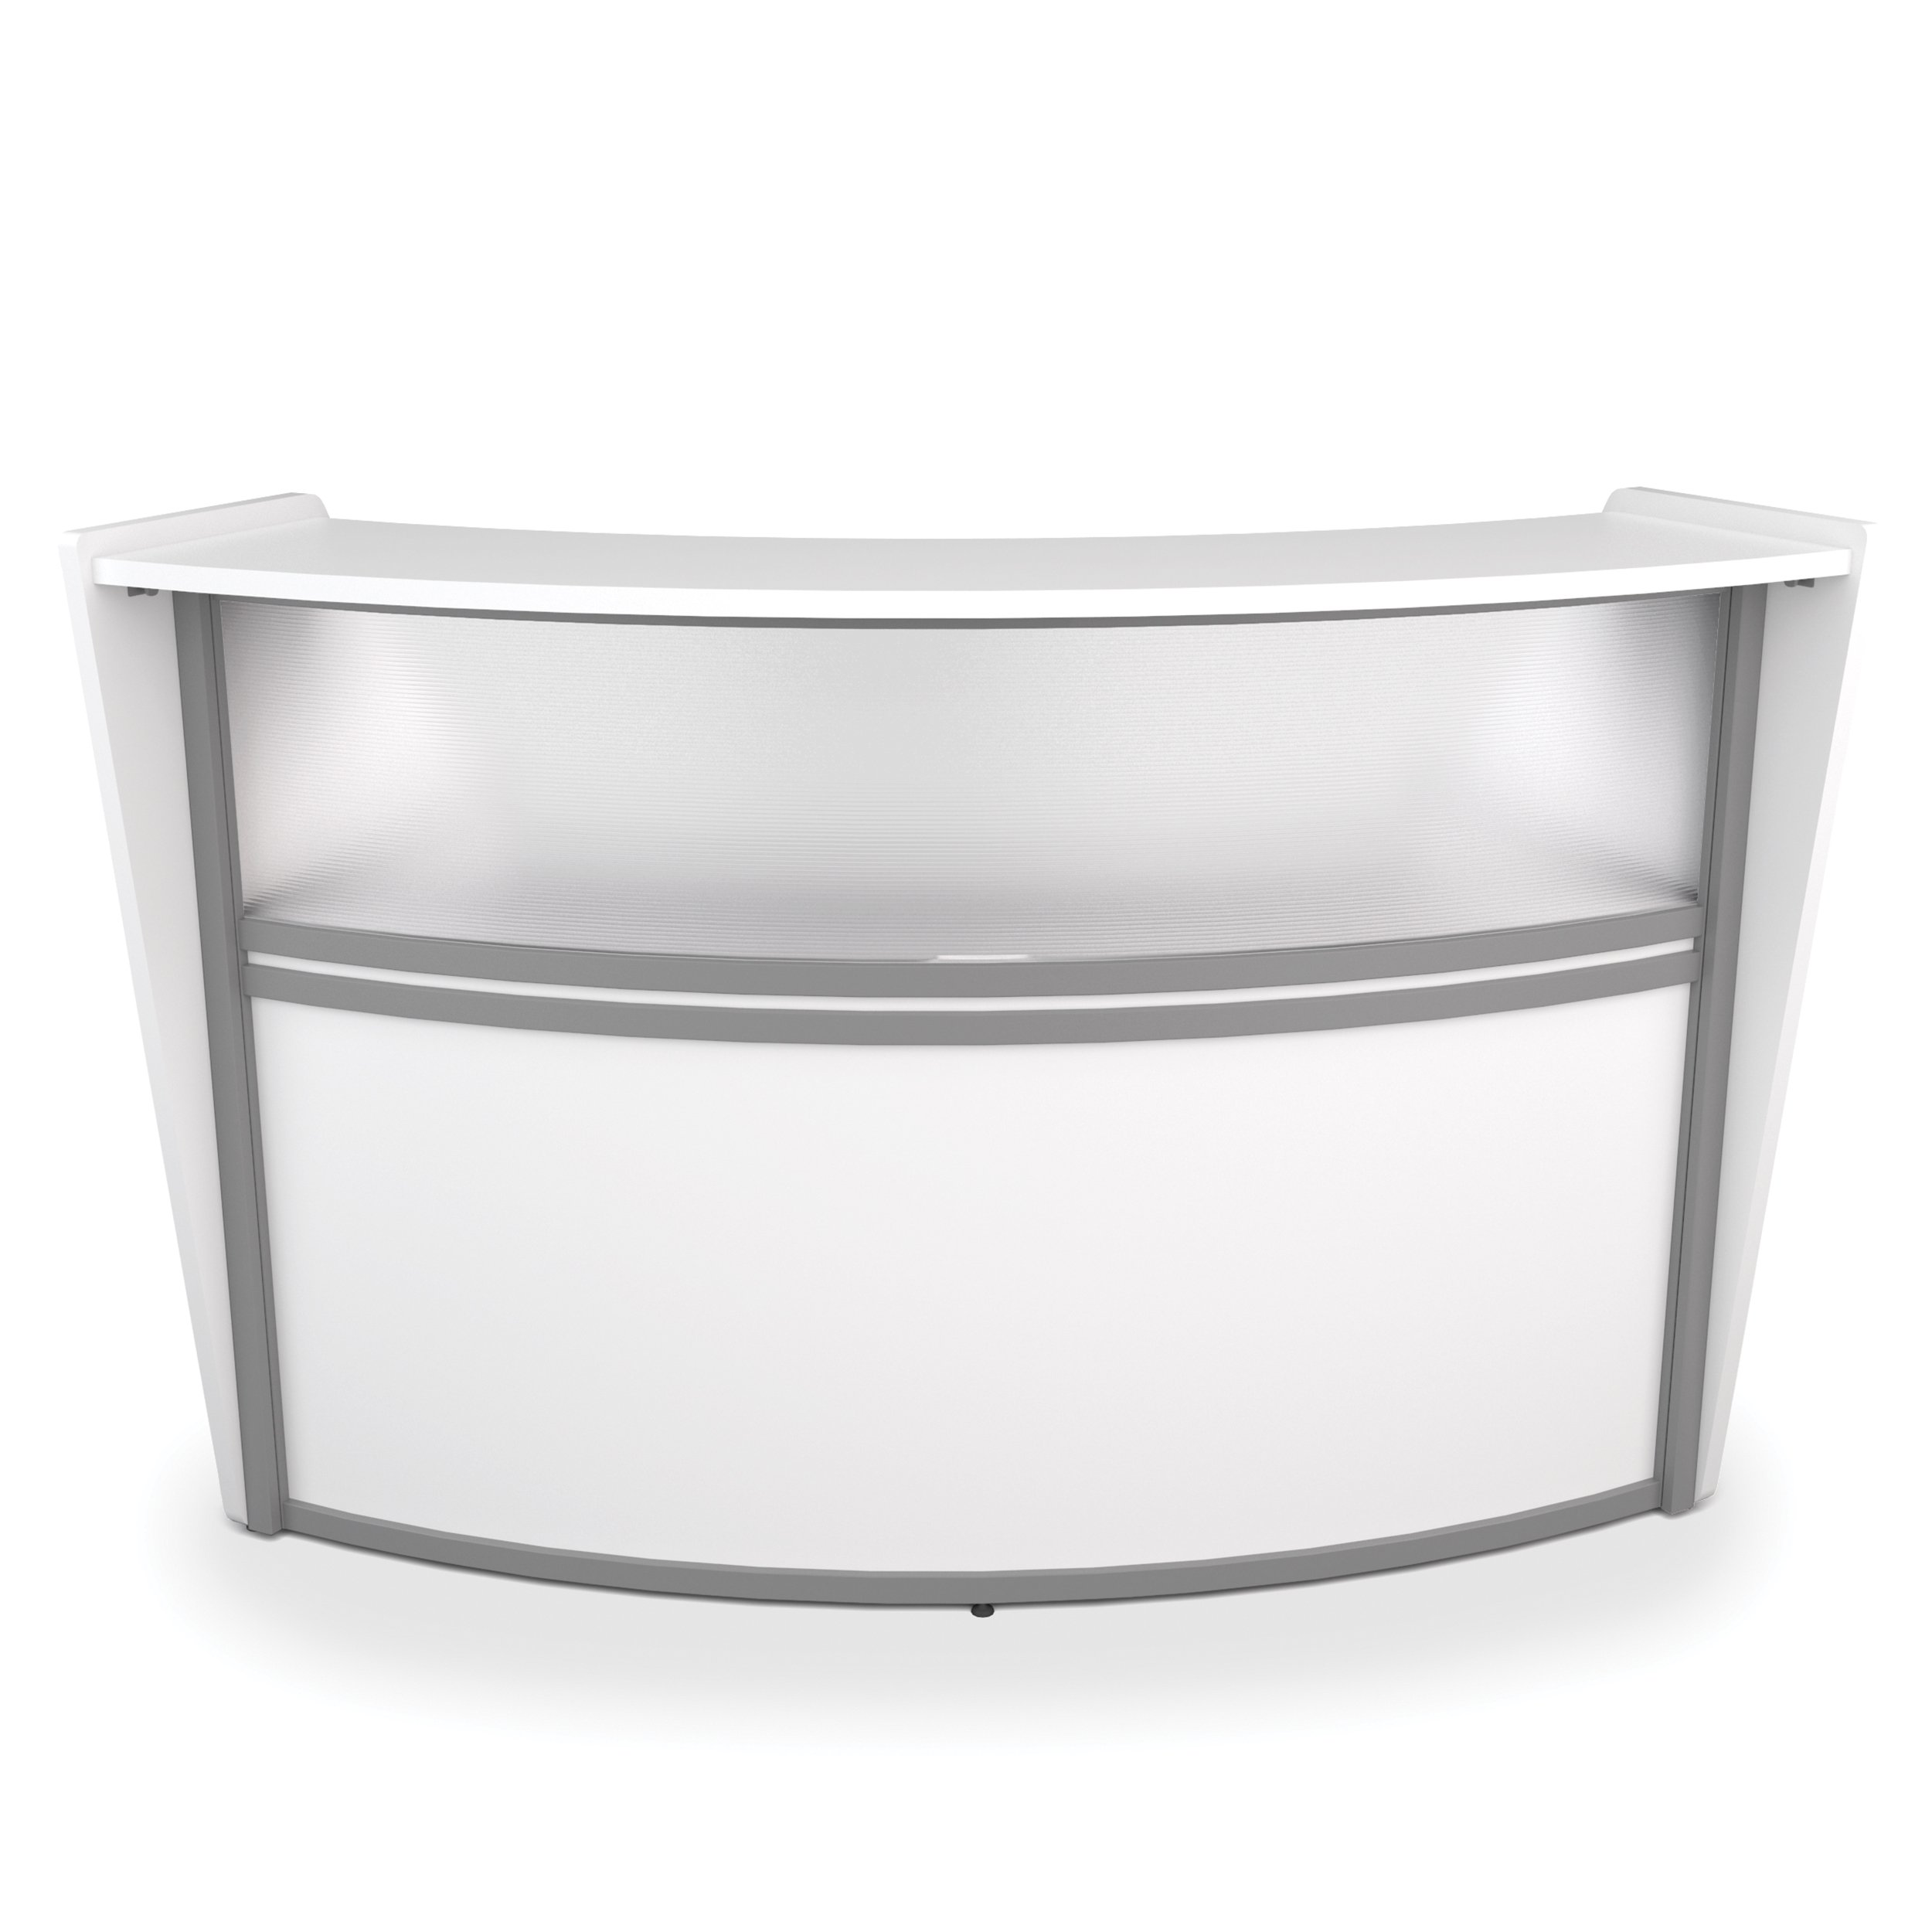 OFM Marque Series Plexi Single-Unit Curved Reception Station - Office Furniture Receptionist/Secretary Desk, White (55310-WHITE) by OFM